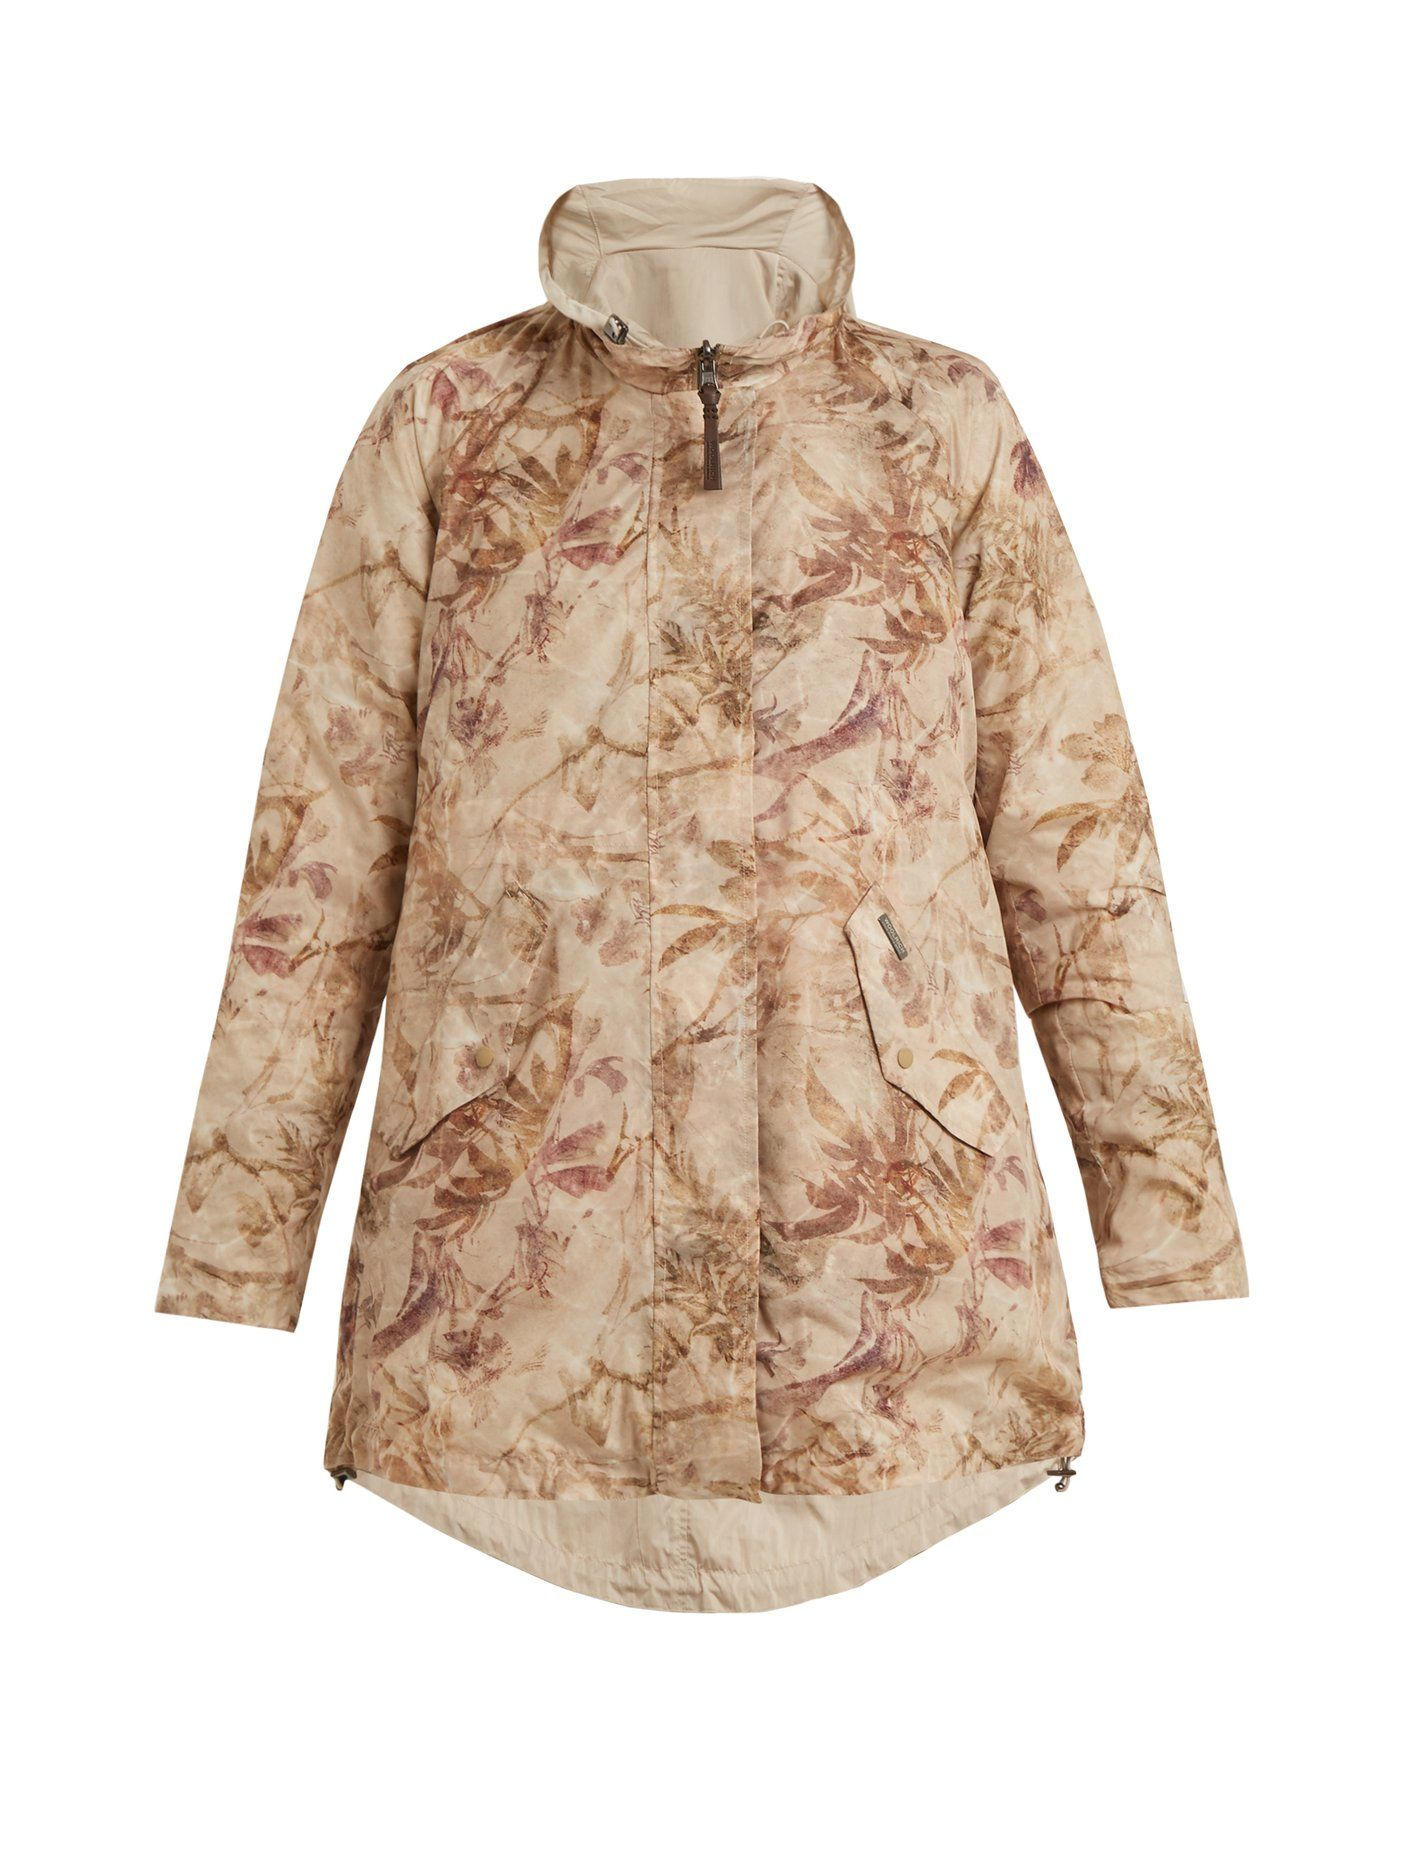 on sale cb7c3 300c2 Reversible palm-print shell jacket | Woolrich John Rich ...